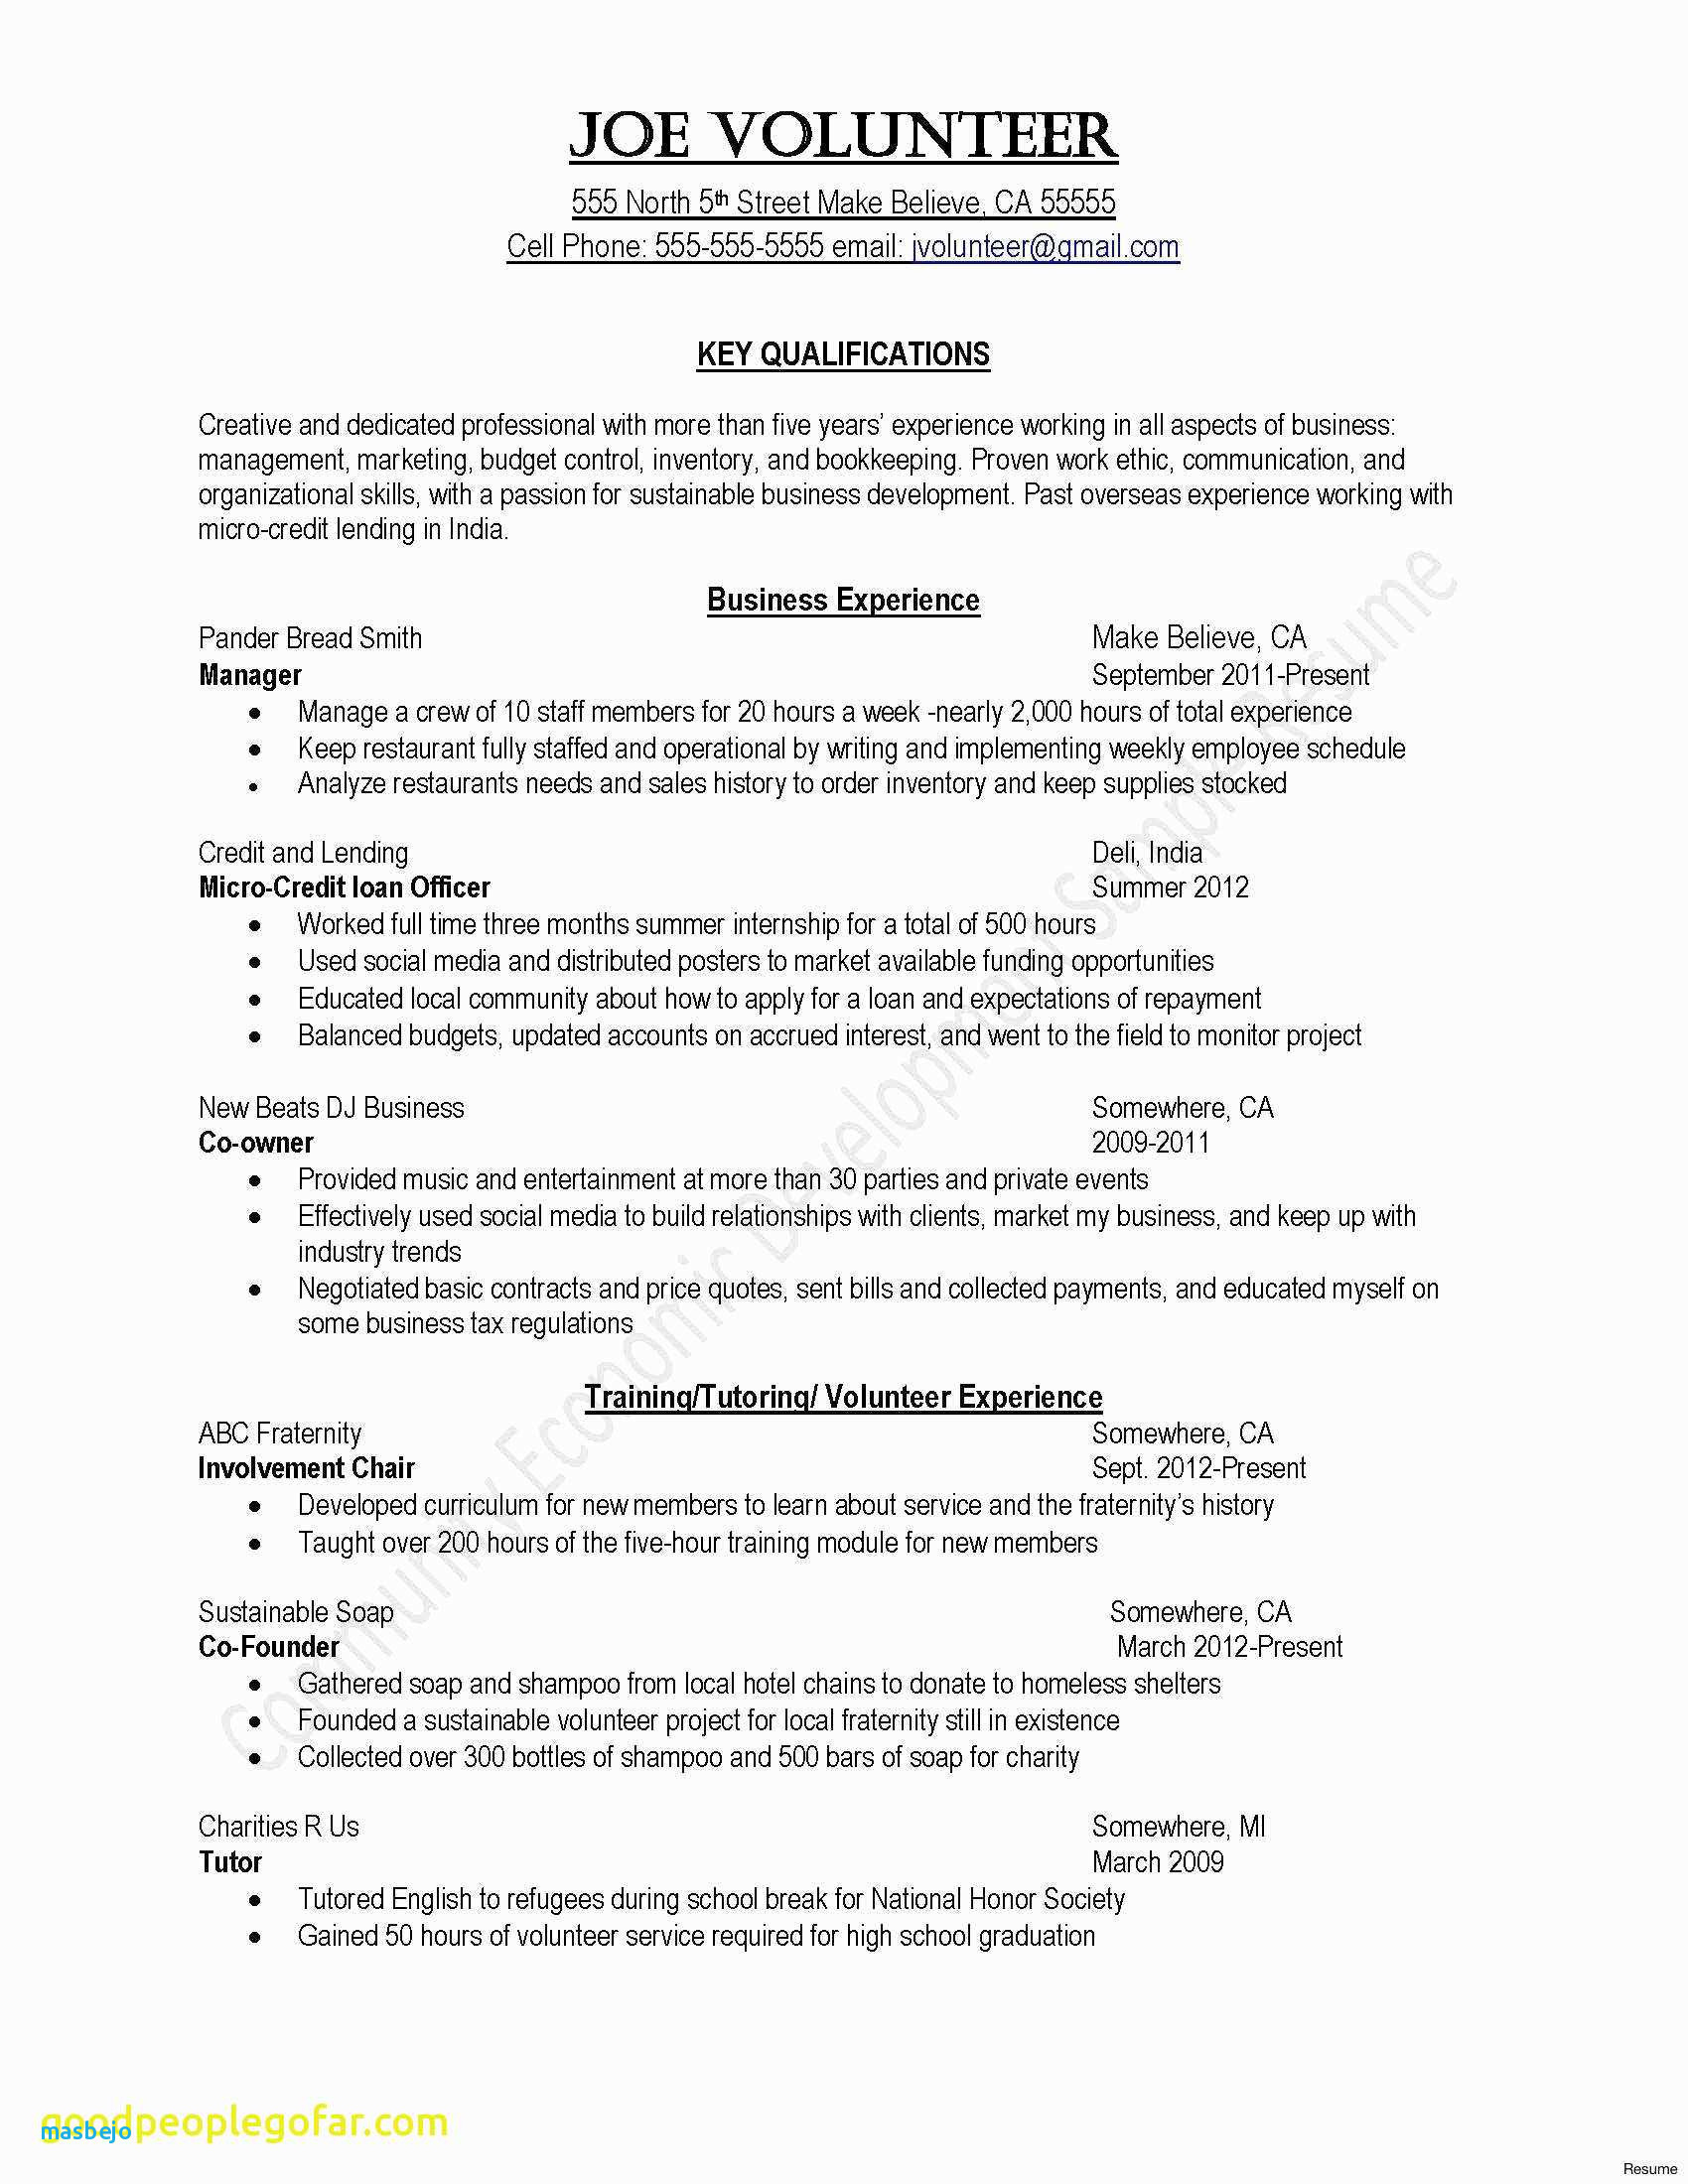 ballet resume template example-Dance Resume Template Grapher Resume Sample Beautiful Resume Quotes 0d Aurelianmg 8-o